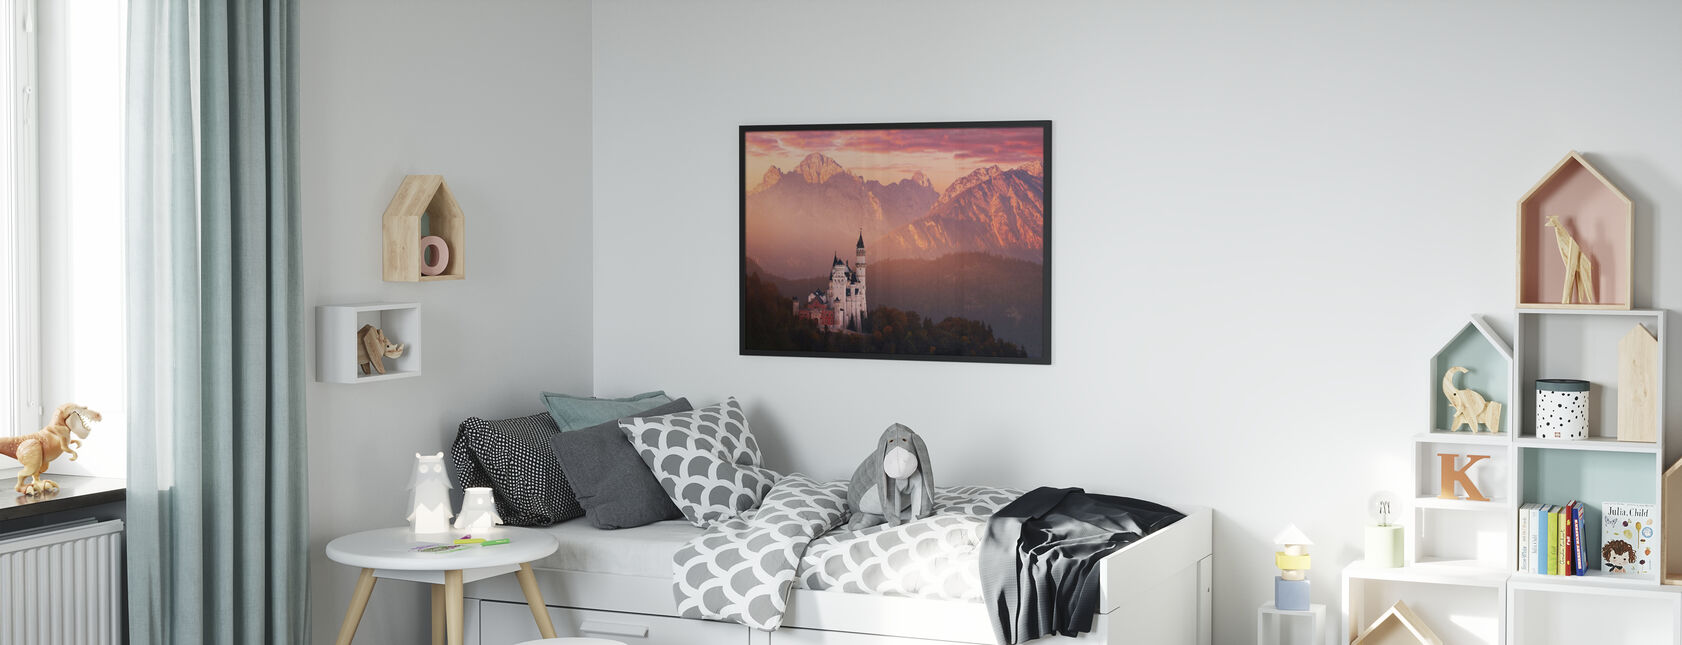 Red Morning Above the Castle - Poster - Kids Room